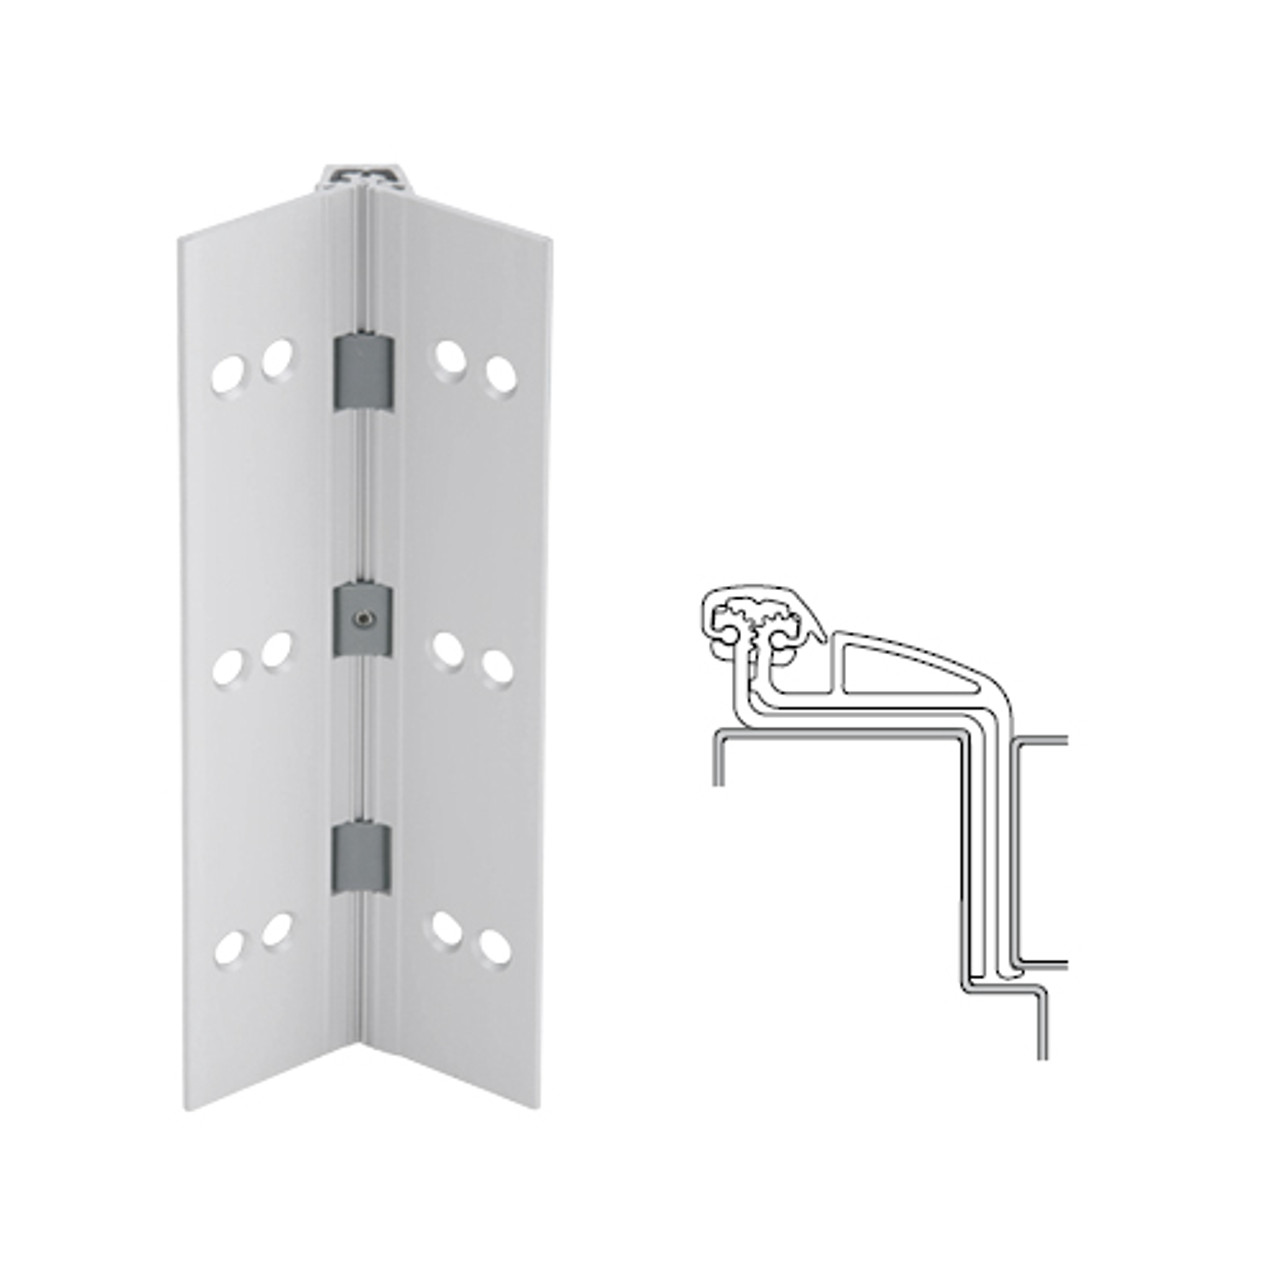 041XY-US28-120-SECHM IVES Full Mortise Continuous Geared Hinges with Security Screws - Hex Pin Drive in Satin Aluminum